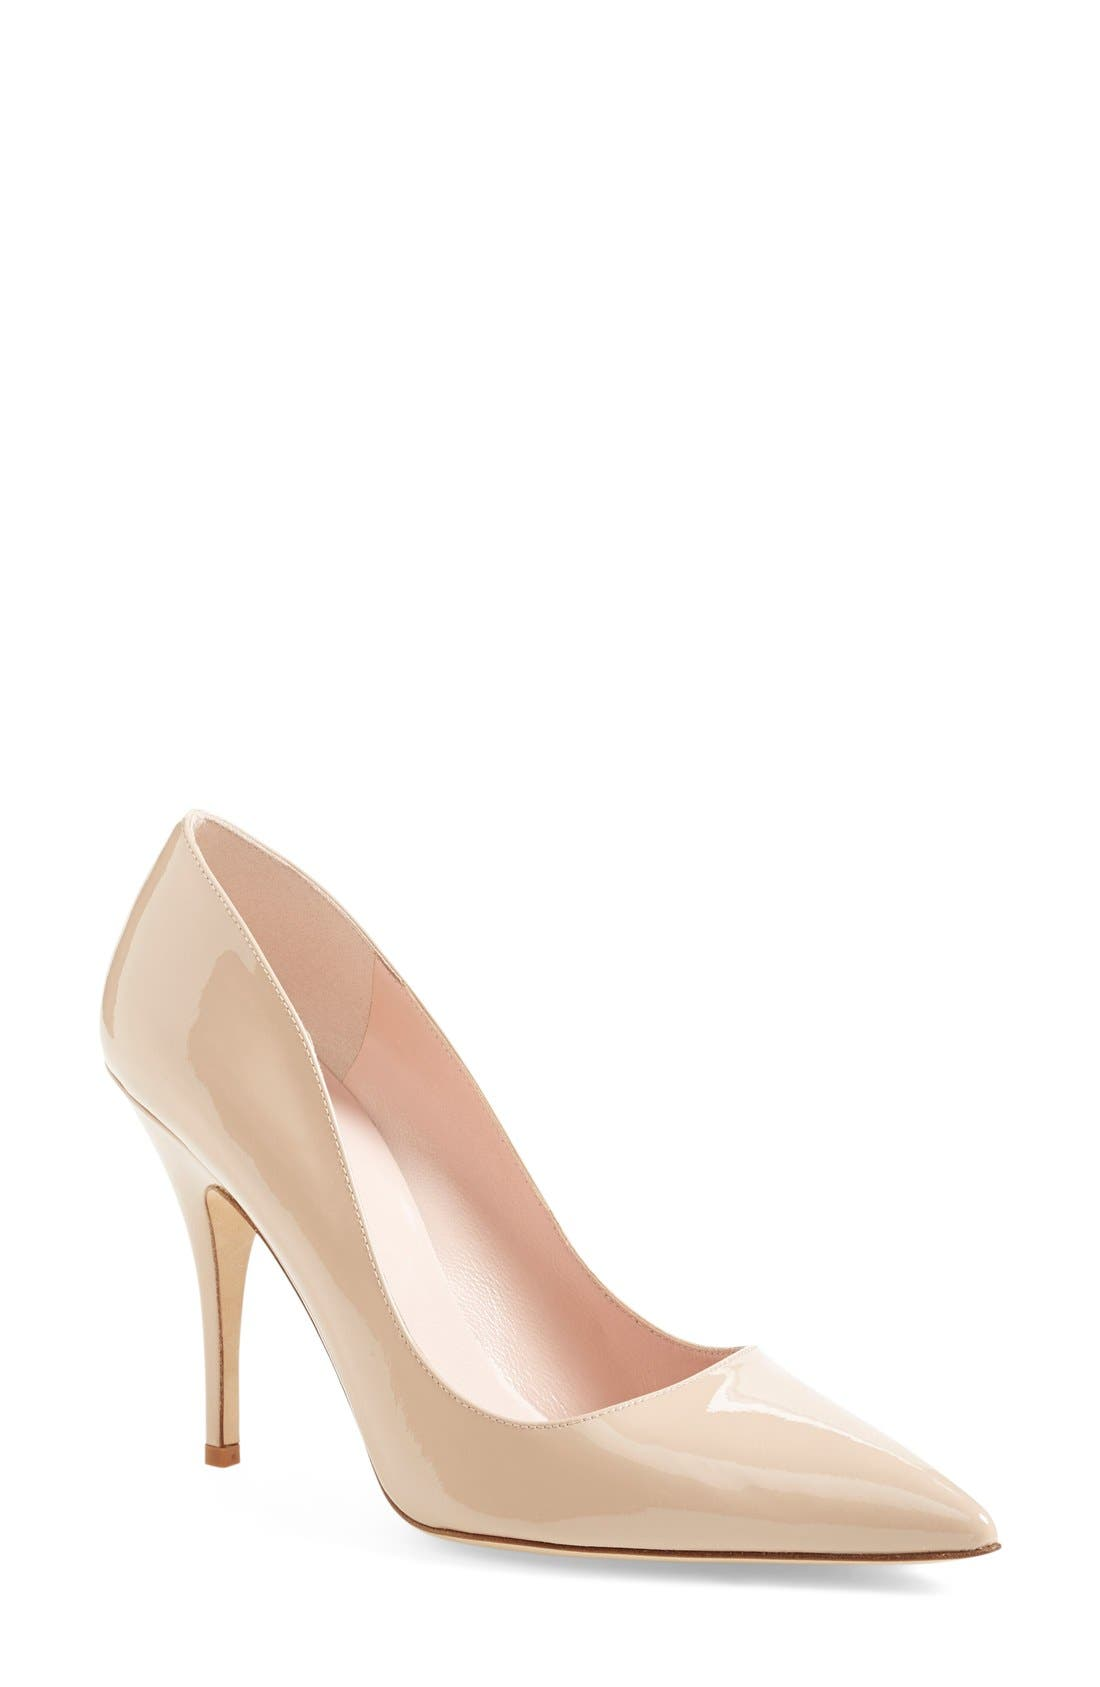 Main Image - kate spade new york 'licorice too' pump (Women)